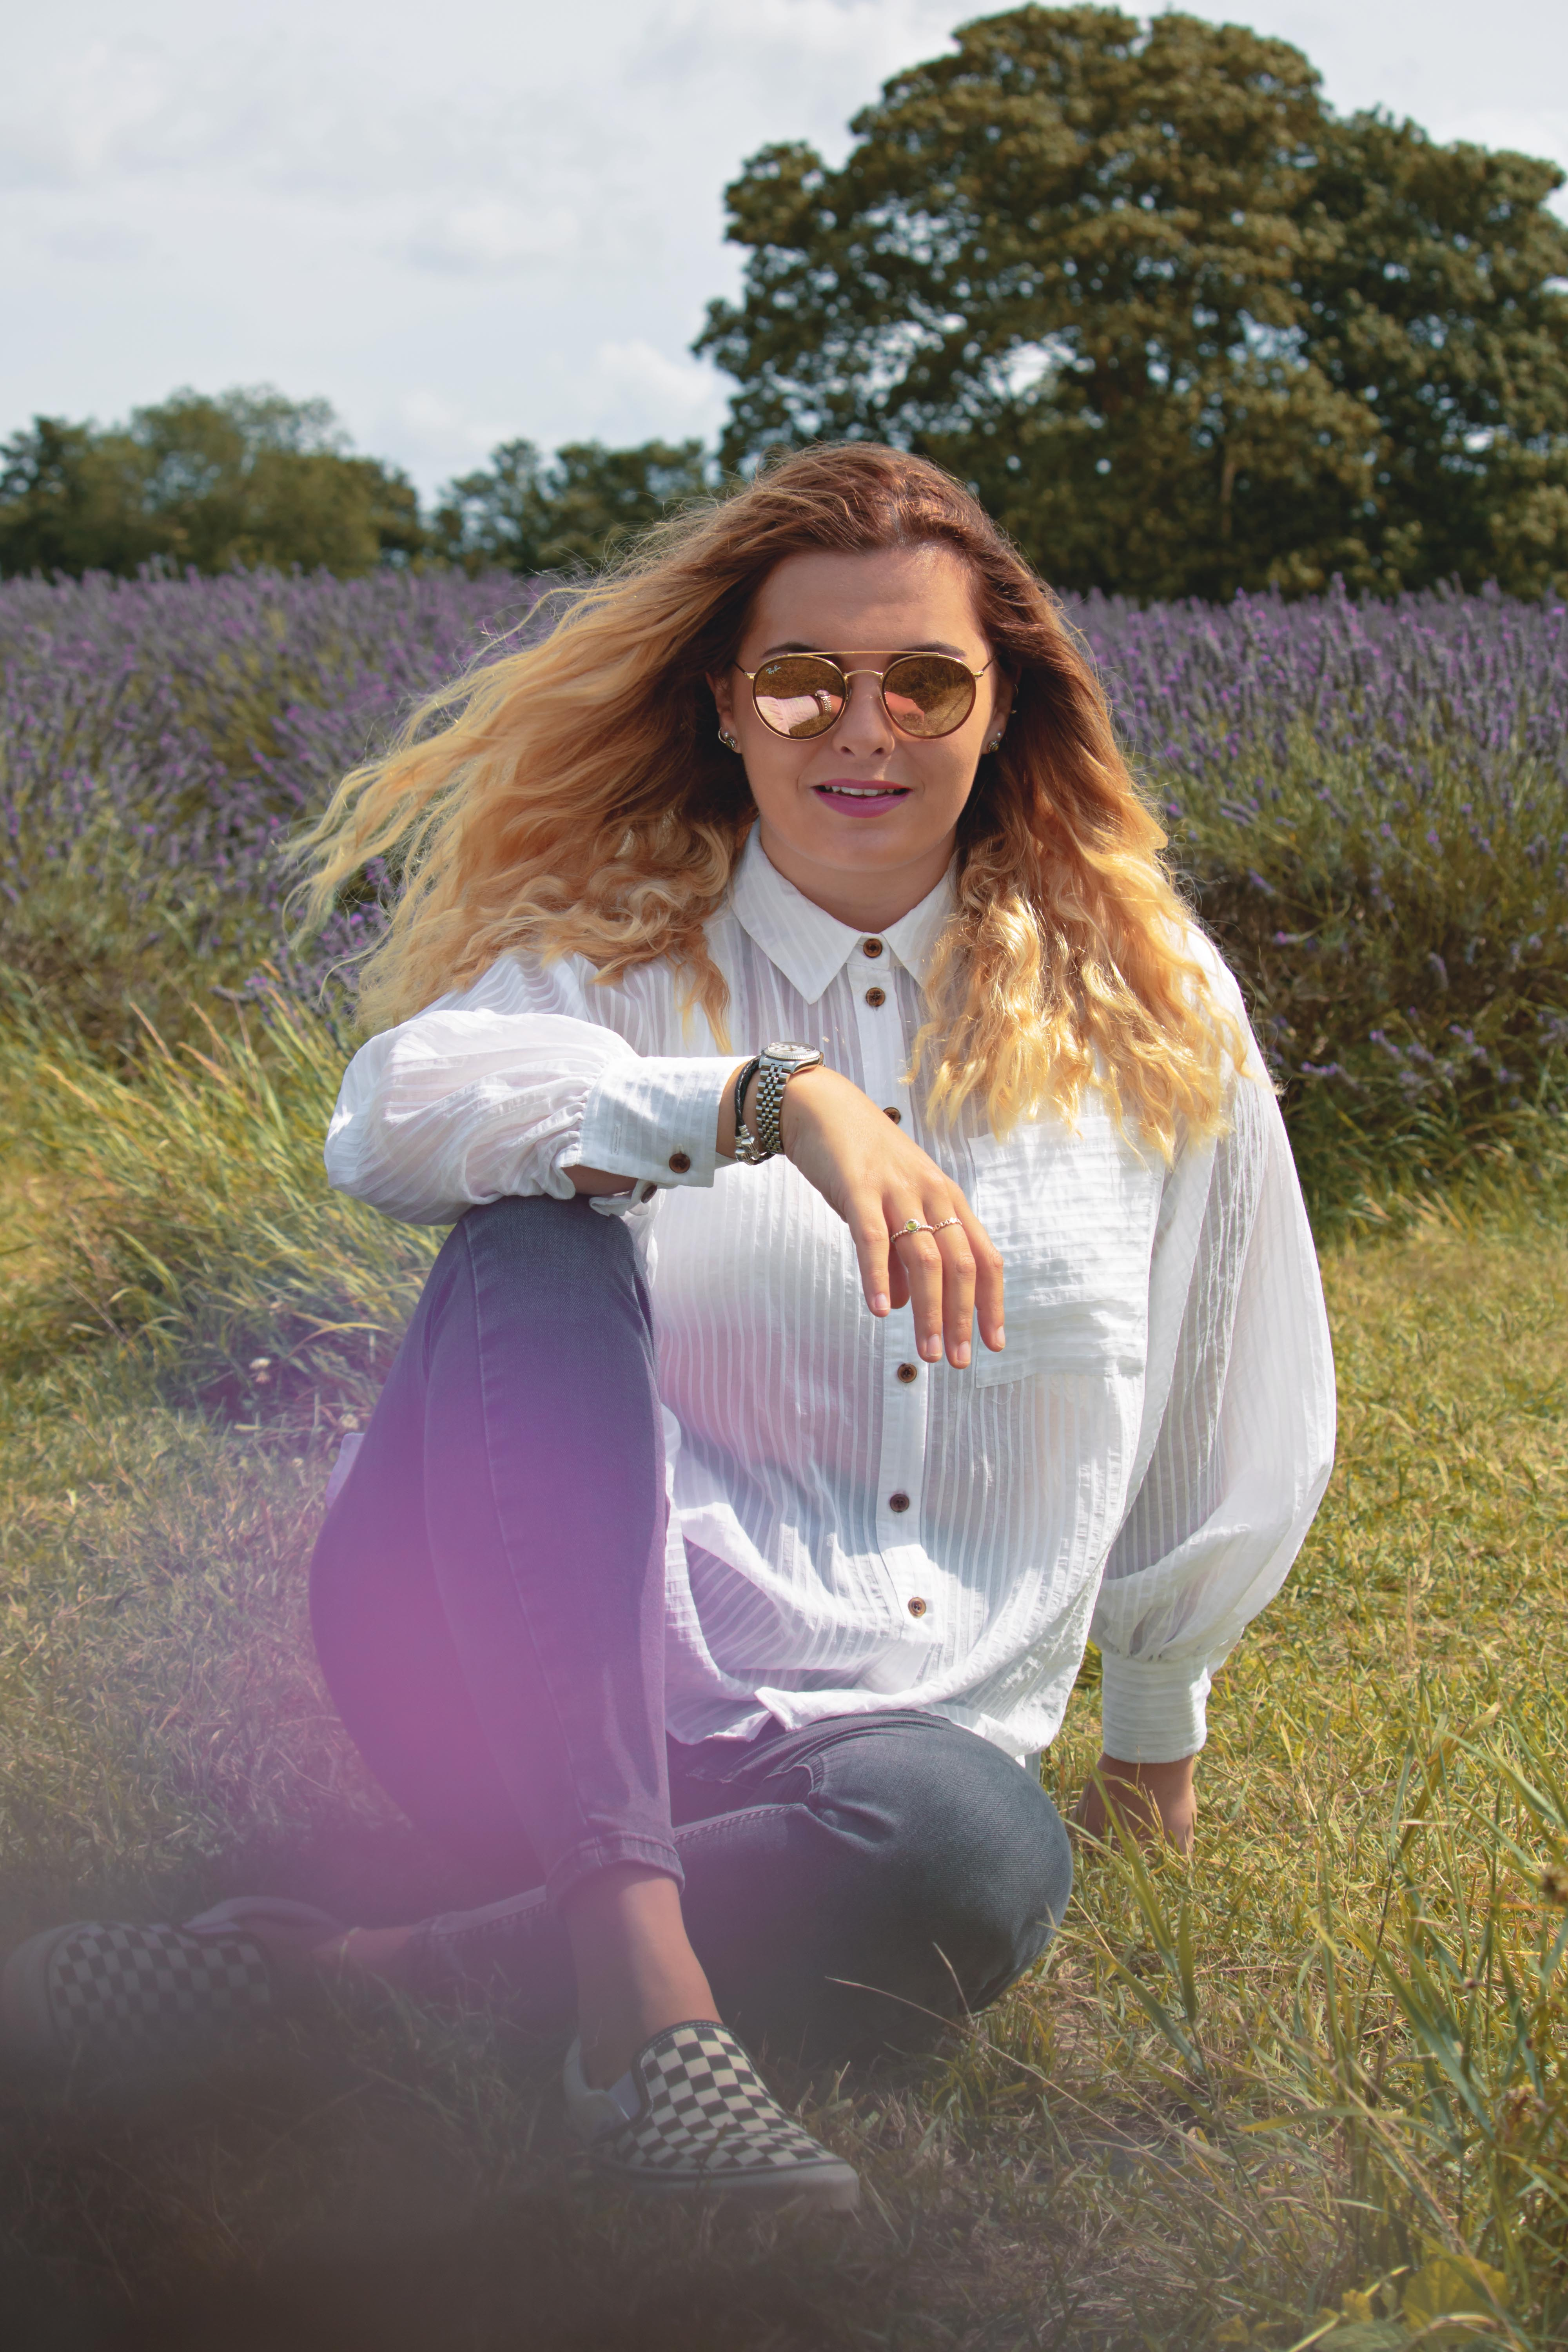 Relaxed Branding photography in the Lavender